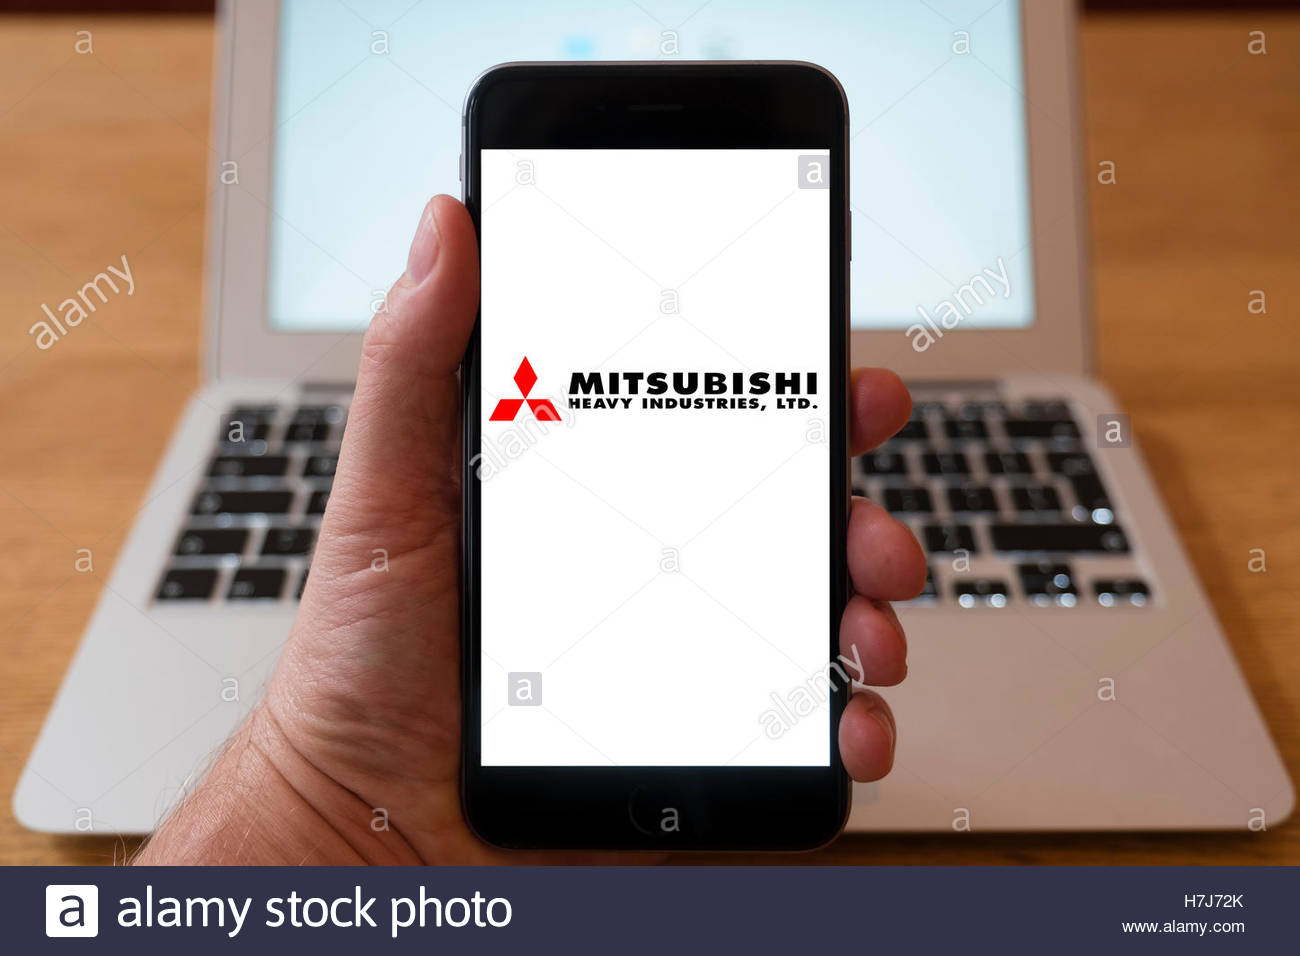 Using iPhone smartphone to display logo of Mitsubishi Heavy Industries - Stock Image